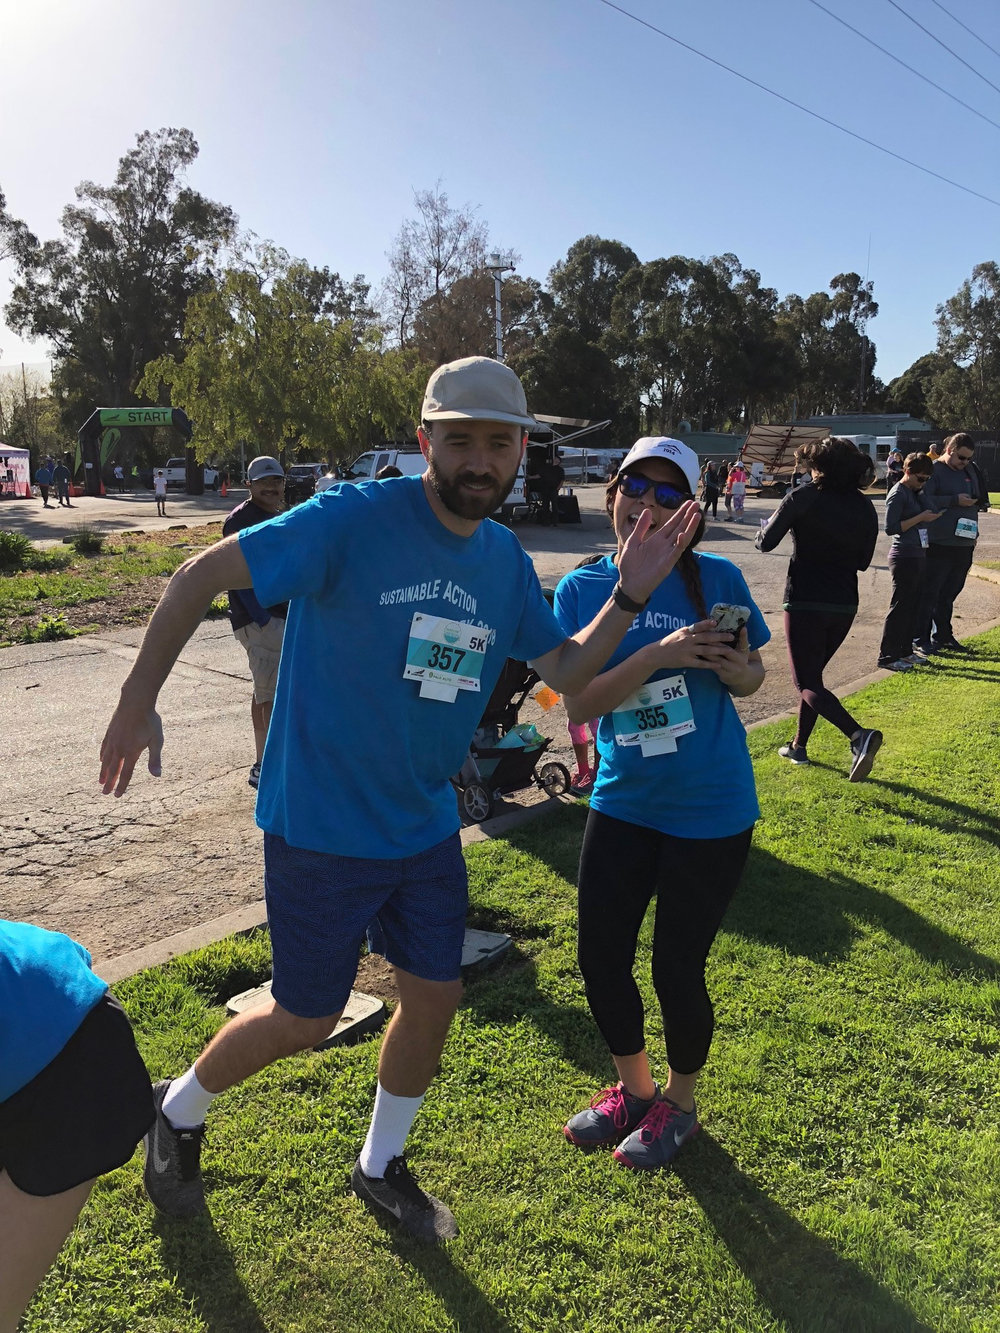 Miles and Paula warm up for the Great Race for Saving Water 5K